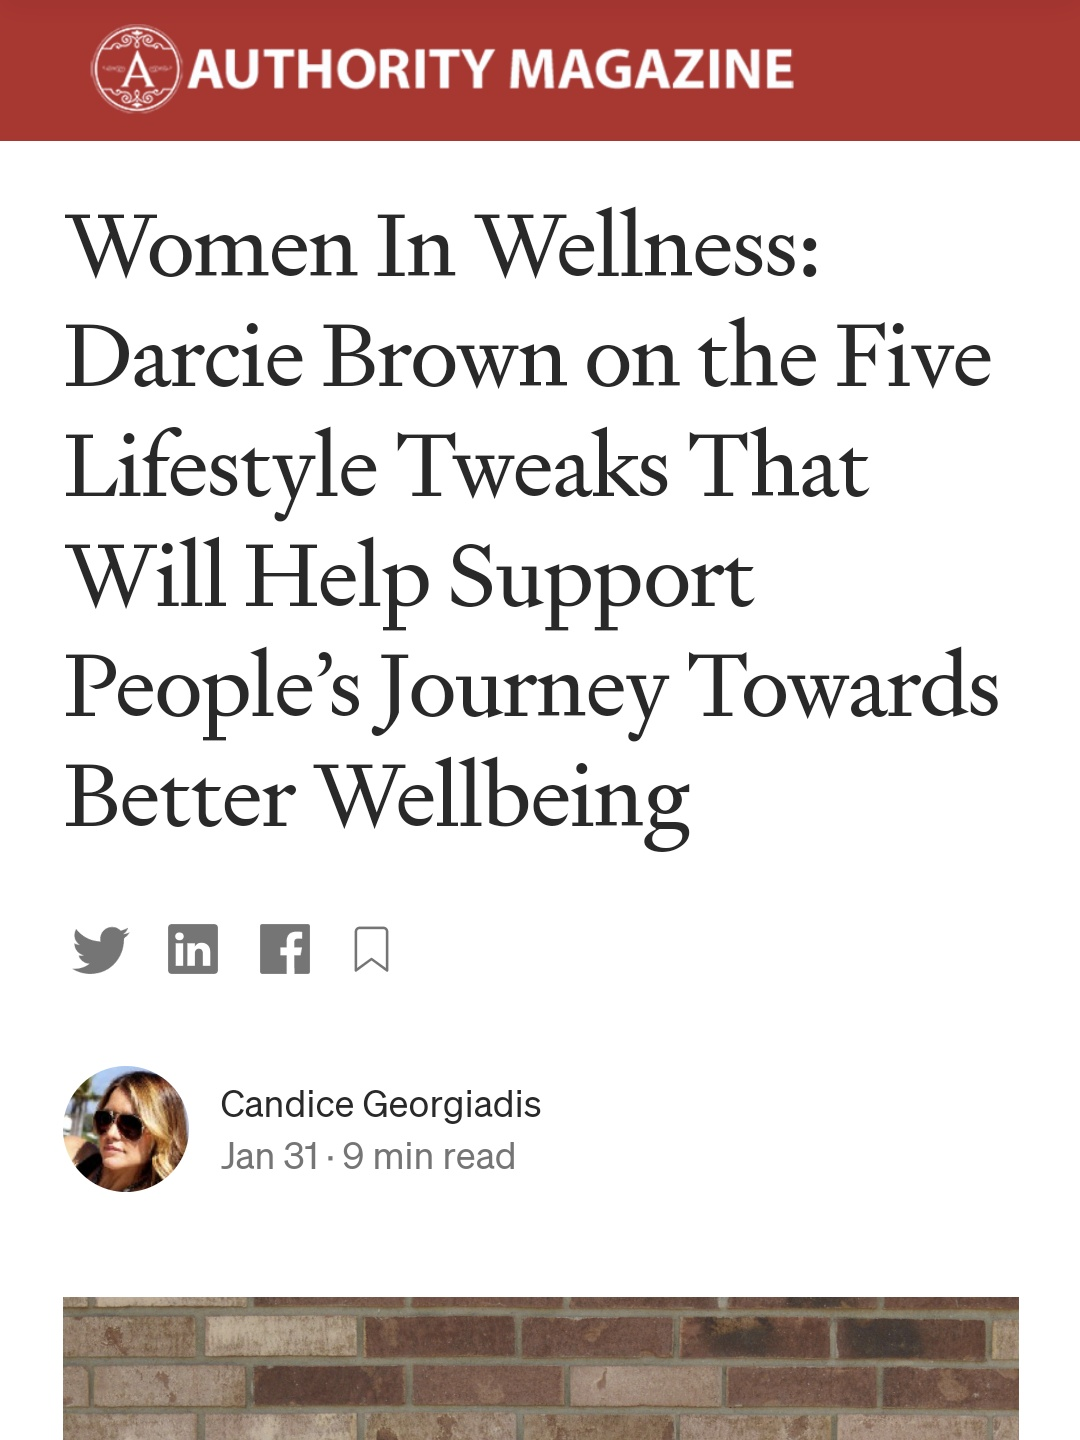 Women in Wellness - Darcie Brown, LMFT for Thrive Global